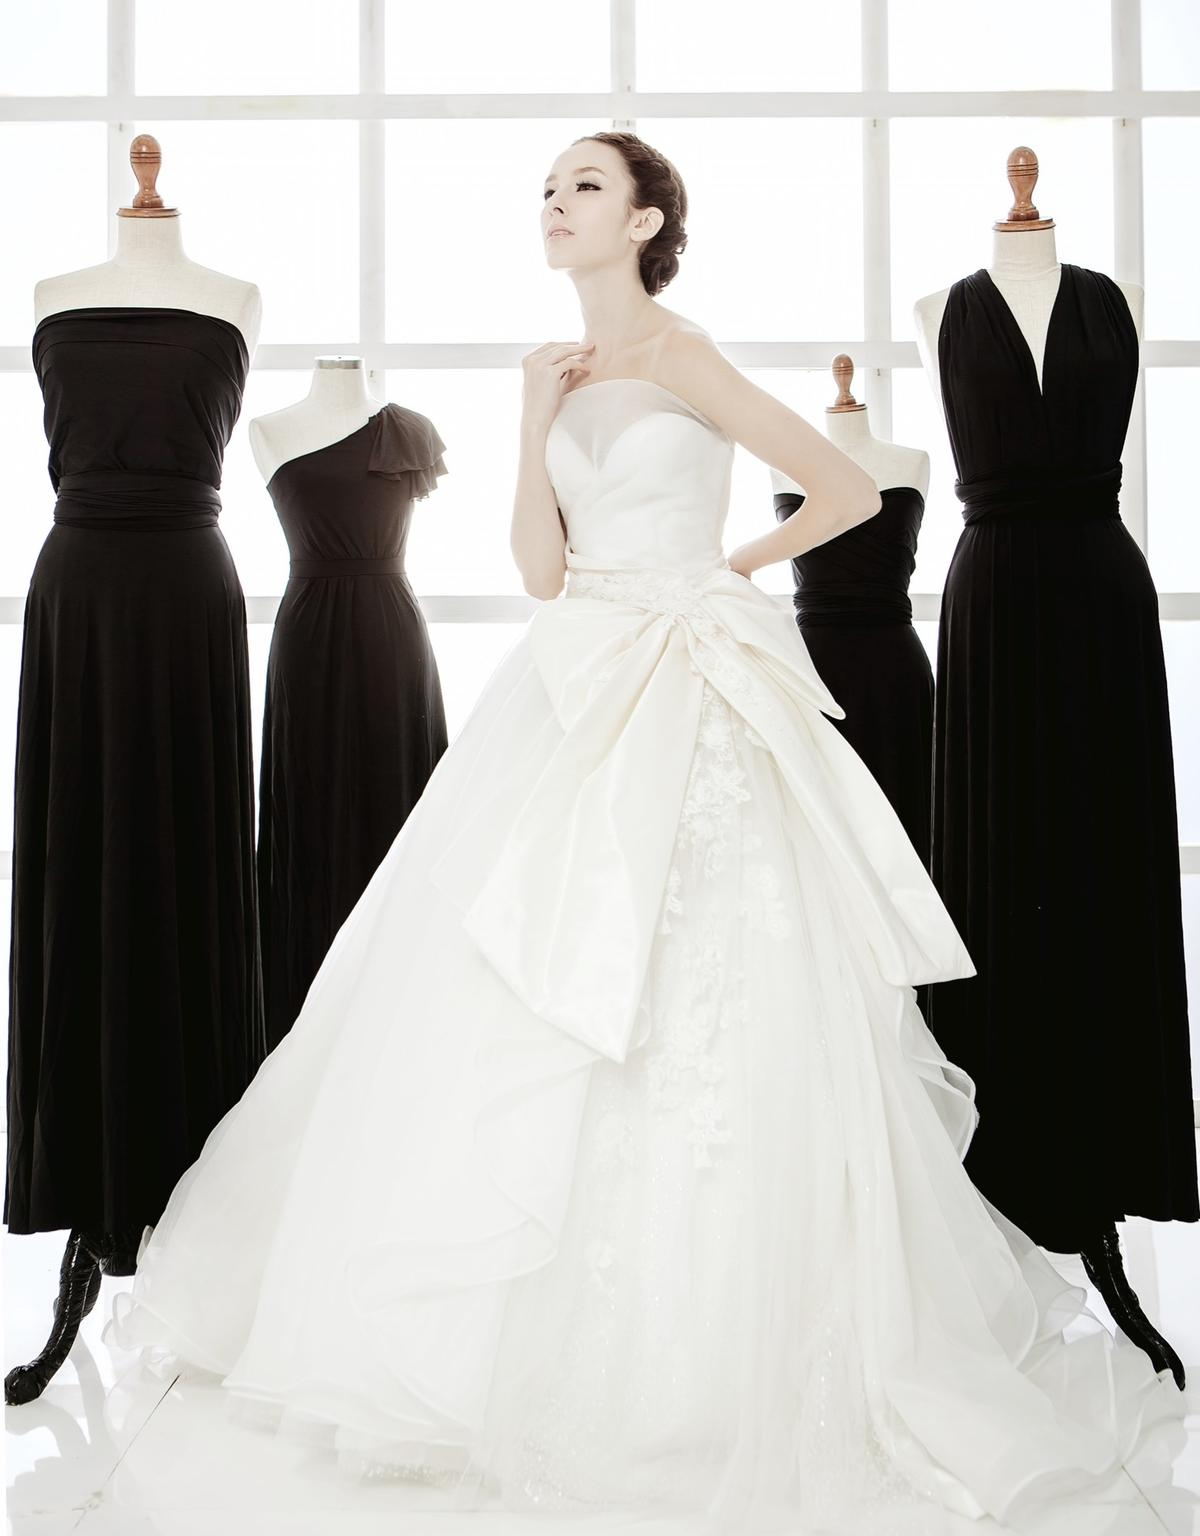 http://www.pwimages.com/images/perfectbride/21e1869db07216a0277543776e85bc31-IMG_2182.jpg